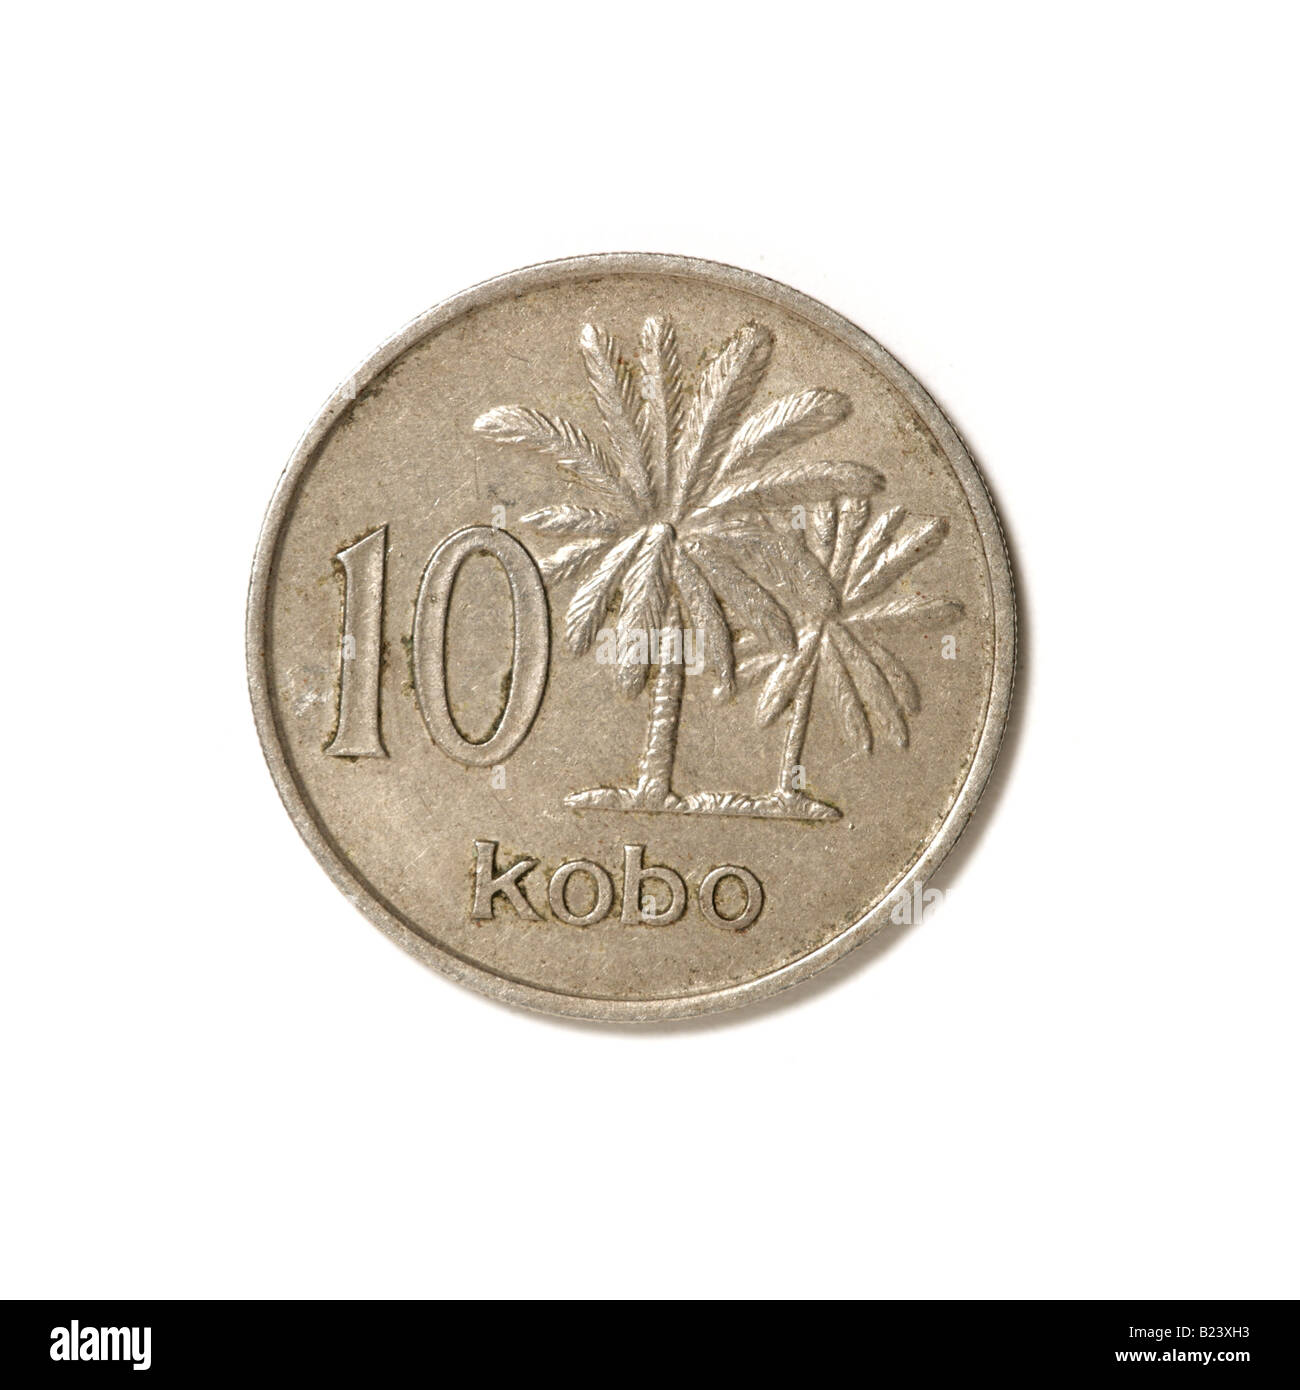 'Nigerian coin' 'Nigerian currency' - Stock Image